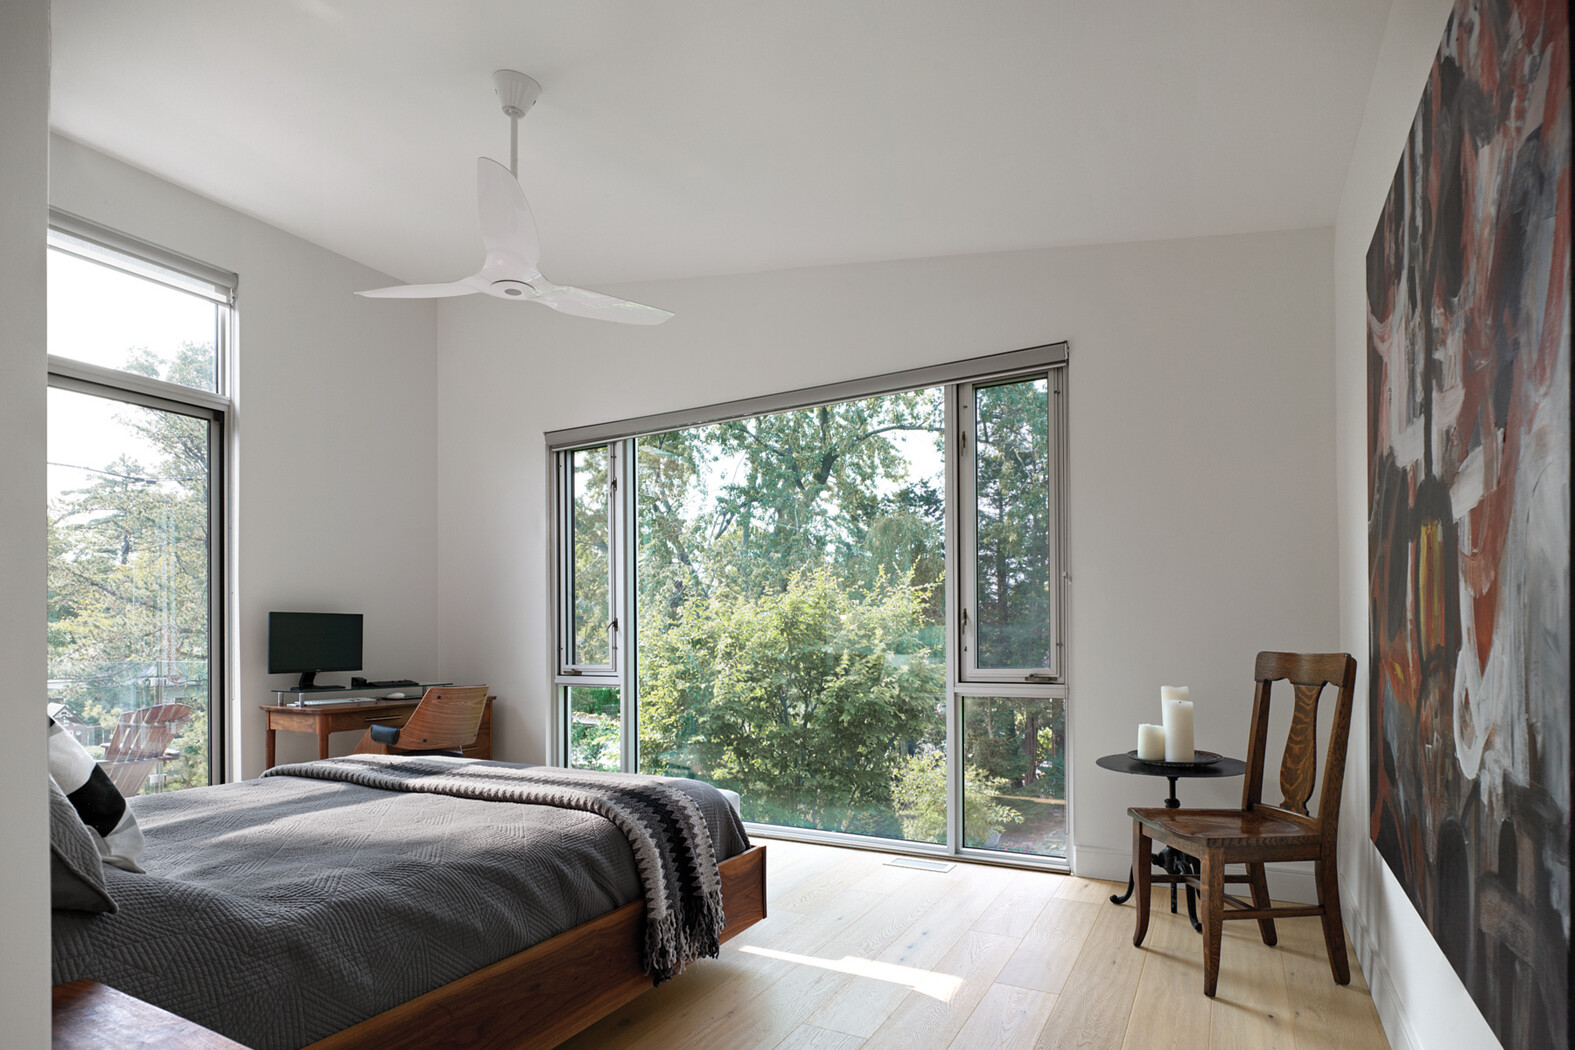 Second storey addition bedroom with large windows looking out to tree filled backyard